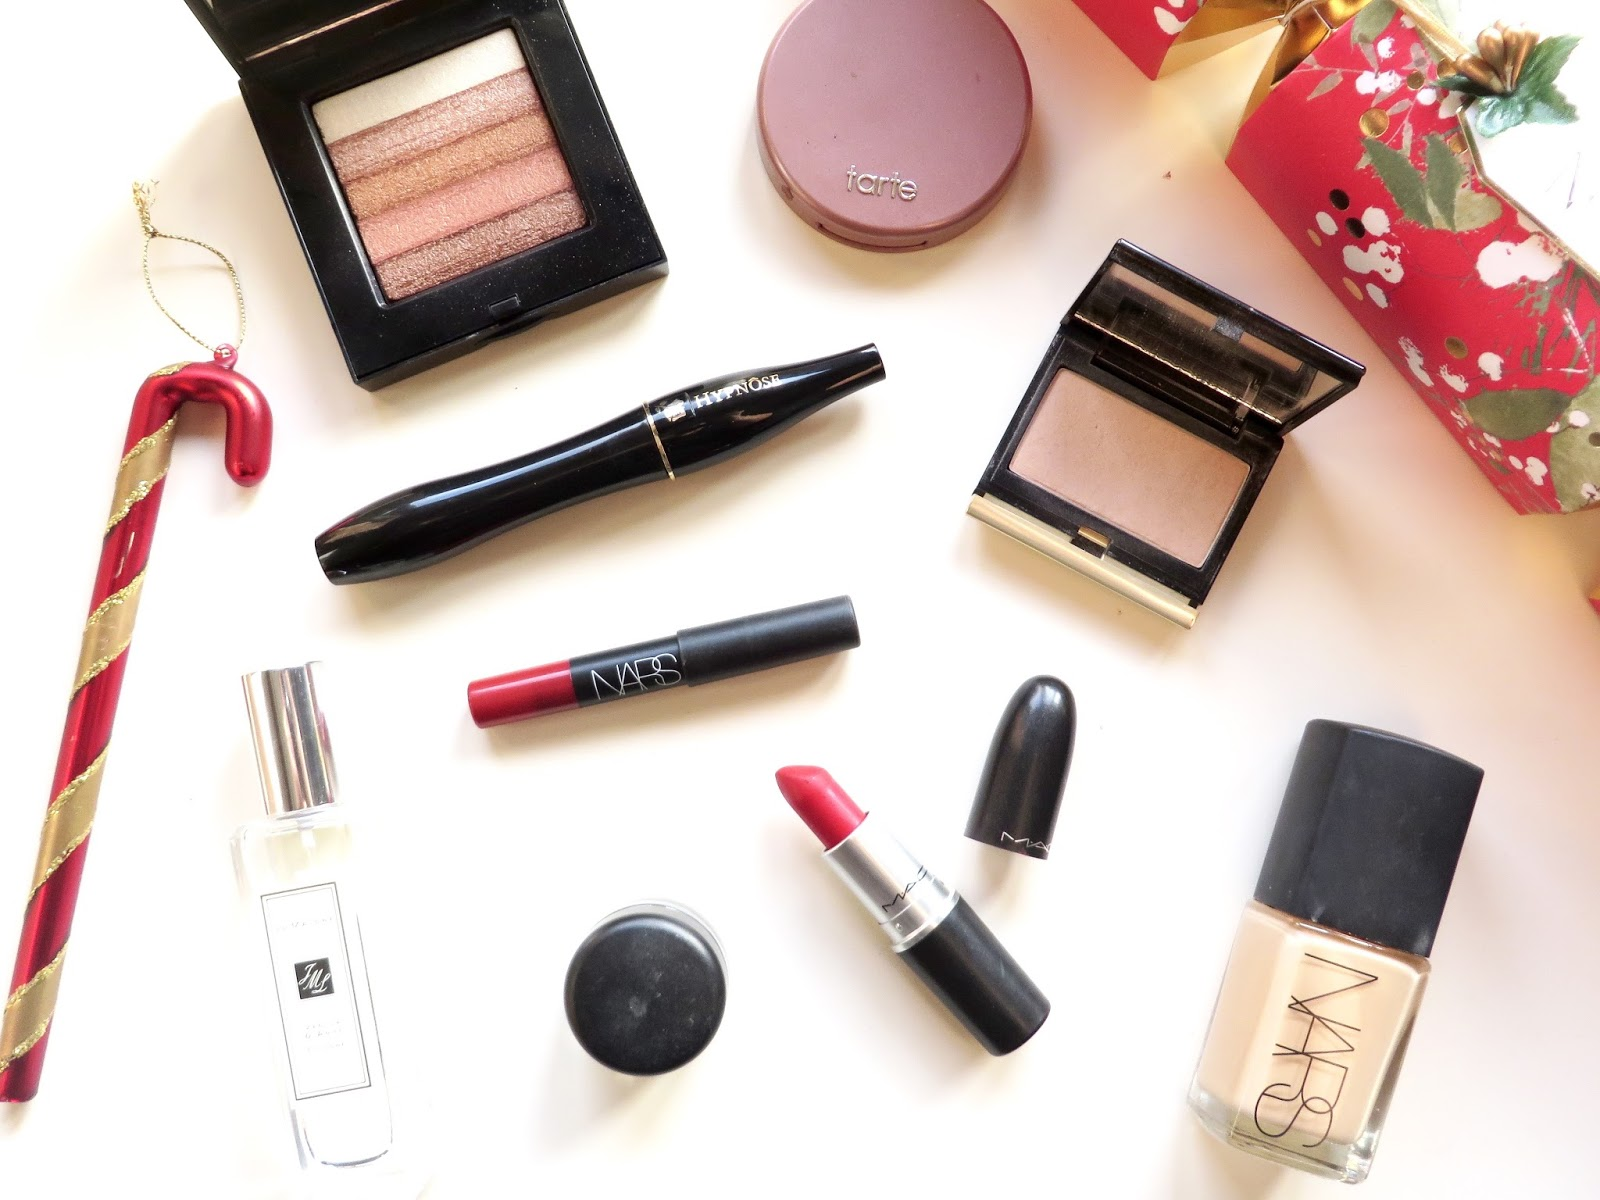 whats in my festive make up bag, charlotte tilbury, mac cosmetics, bobbi brown, lancome, jo malone fragrance, party make up